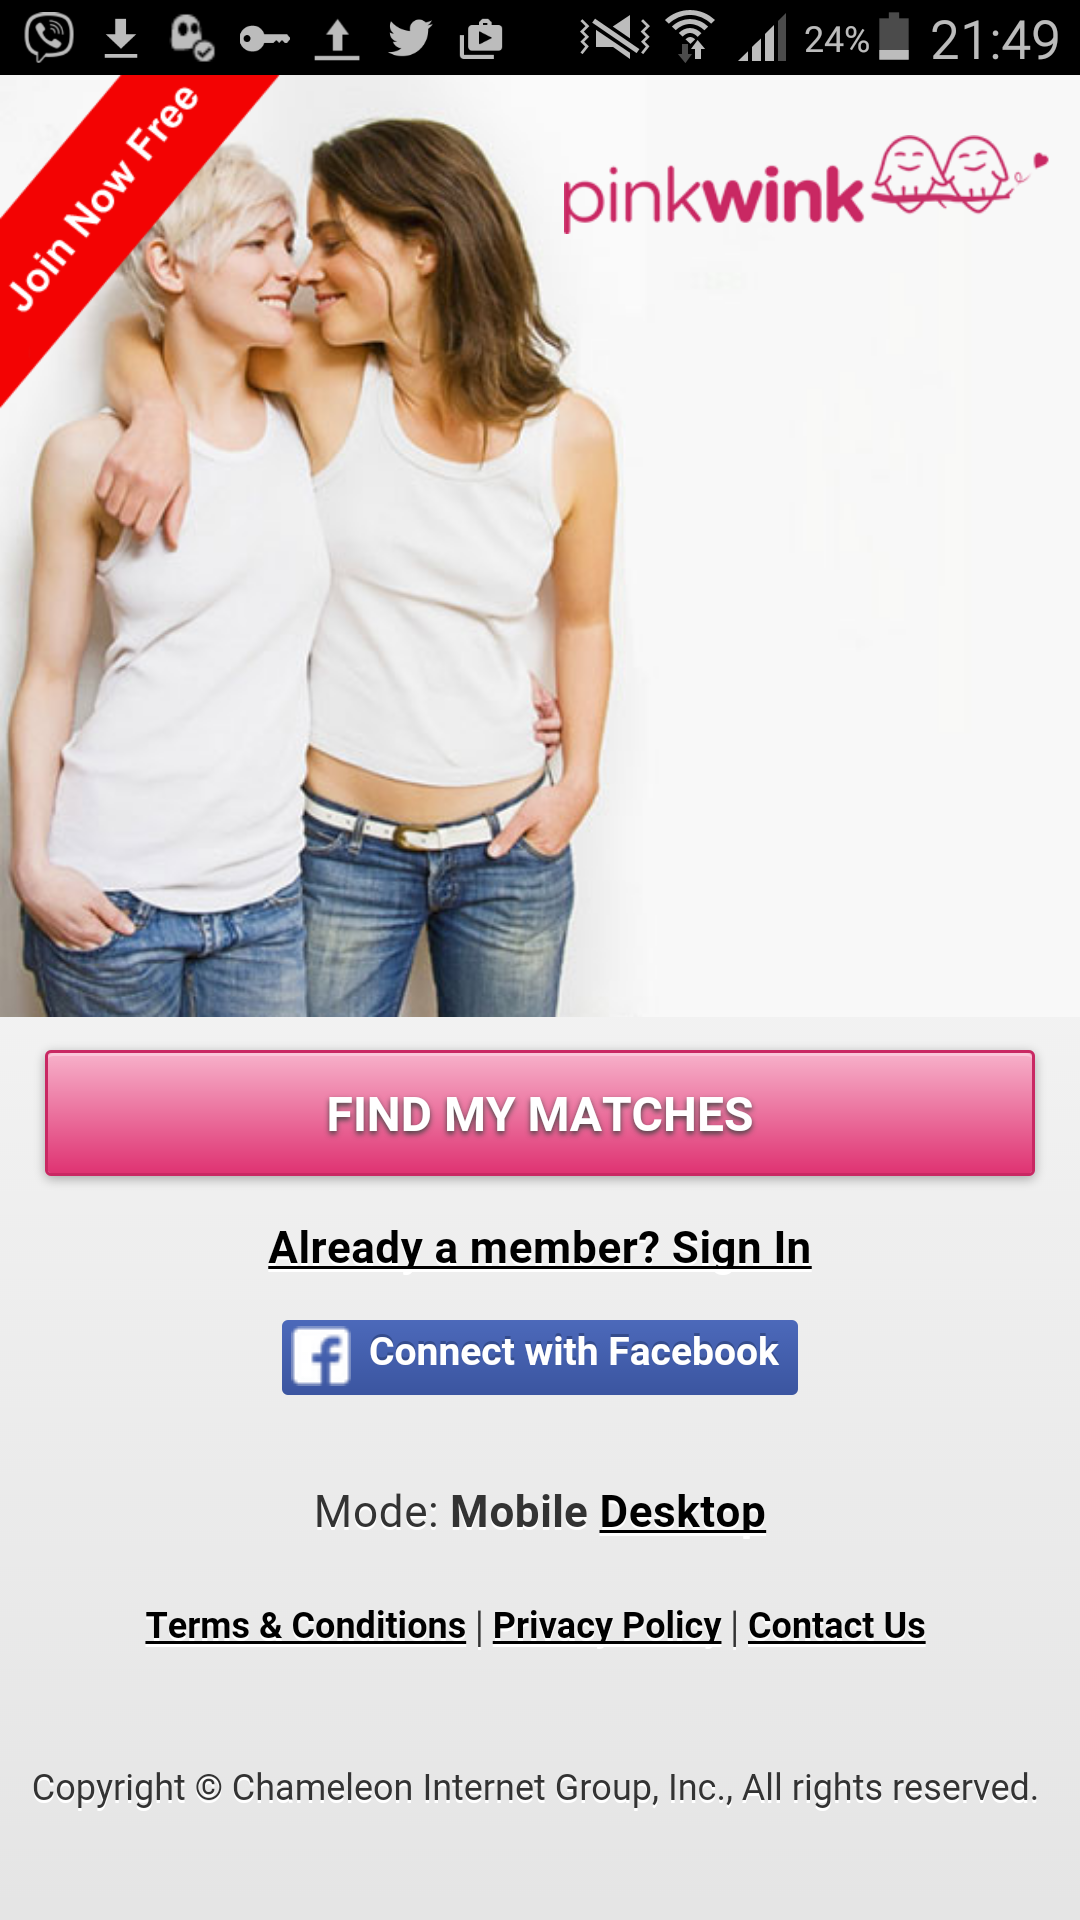 belchertown lesbian dating site How robyn exton grew popular lesbian dating app her  she says the market  was dominated by dating sites that were initially created for gay.